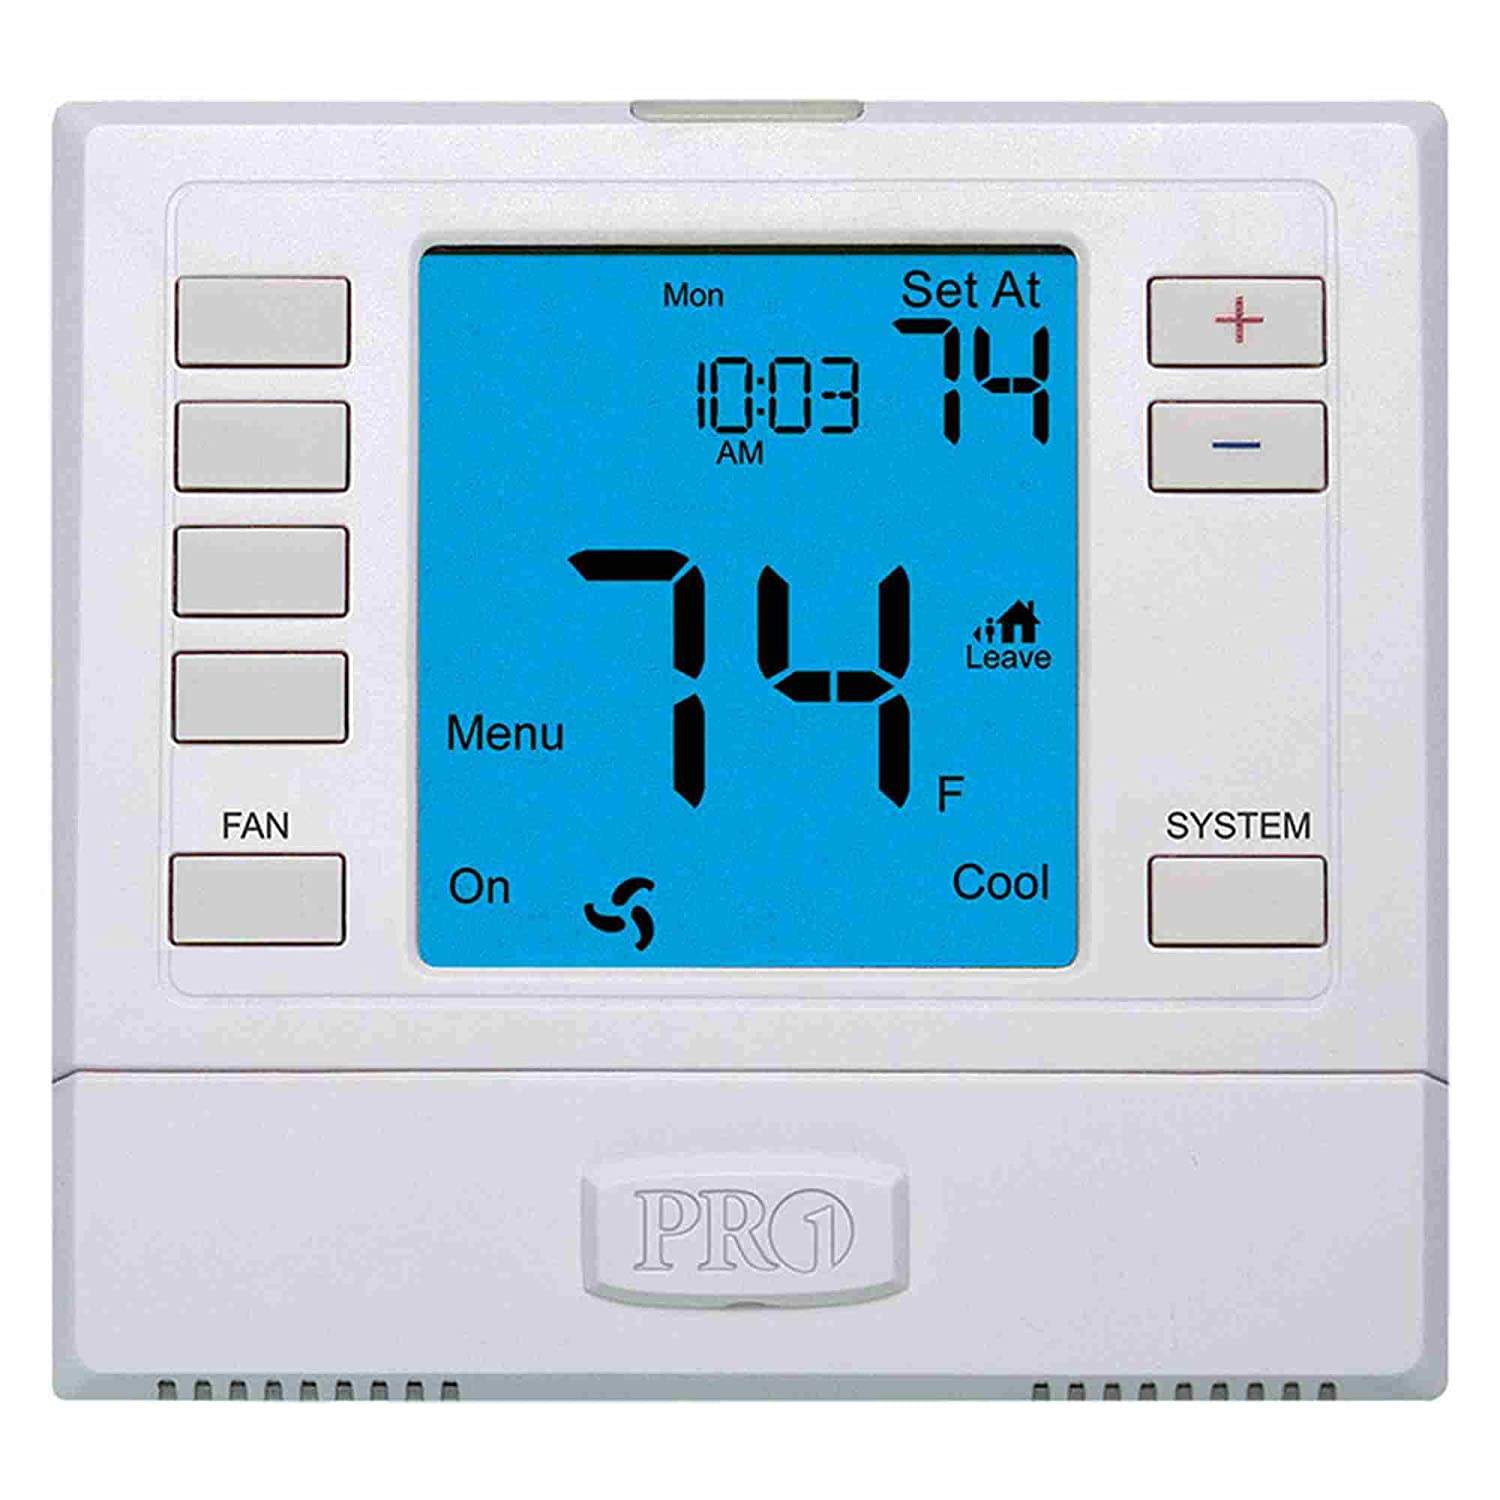 Thermostat 5 1 Day Programmable Stages 3 Heat 2 Cool Emerson Digital Wiring Diagram Household Thermostats